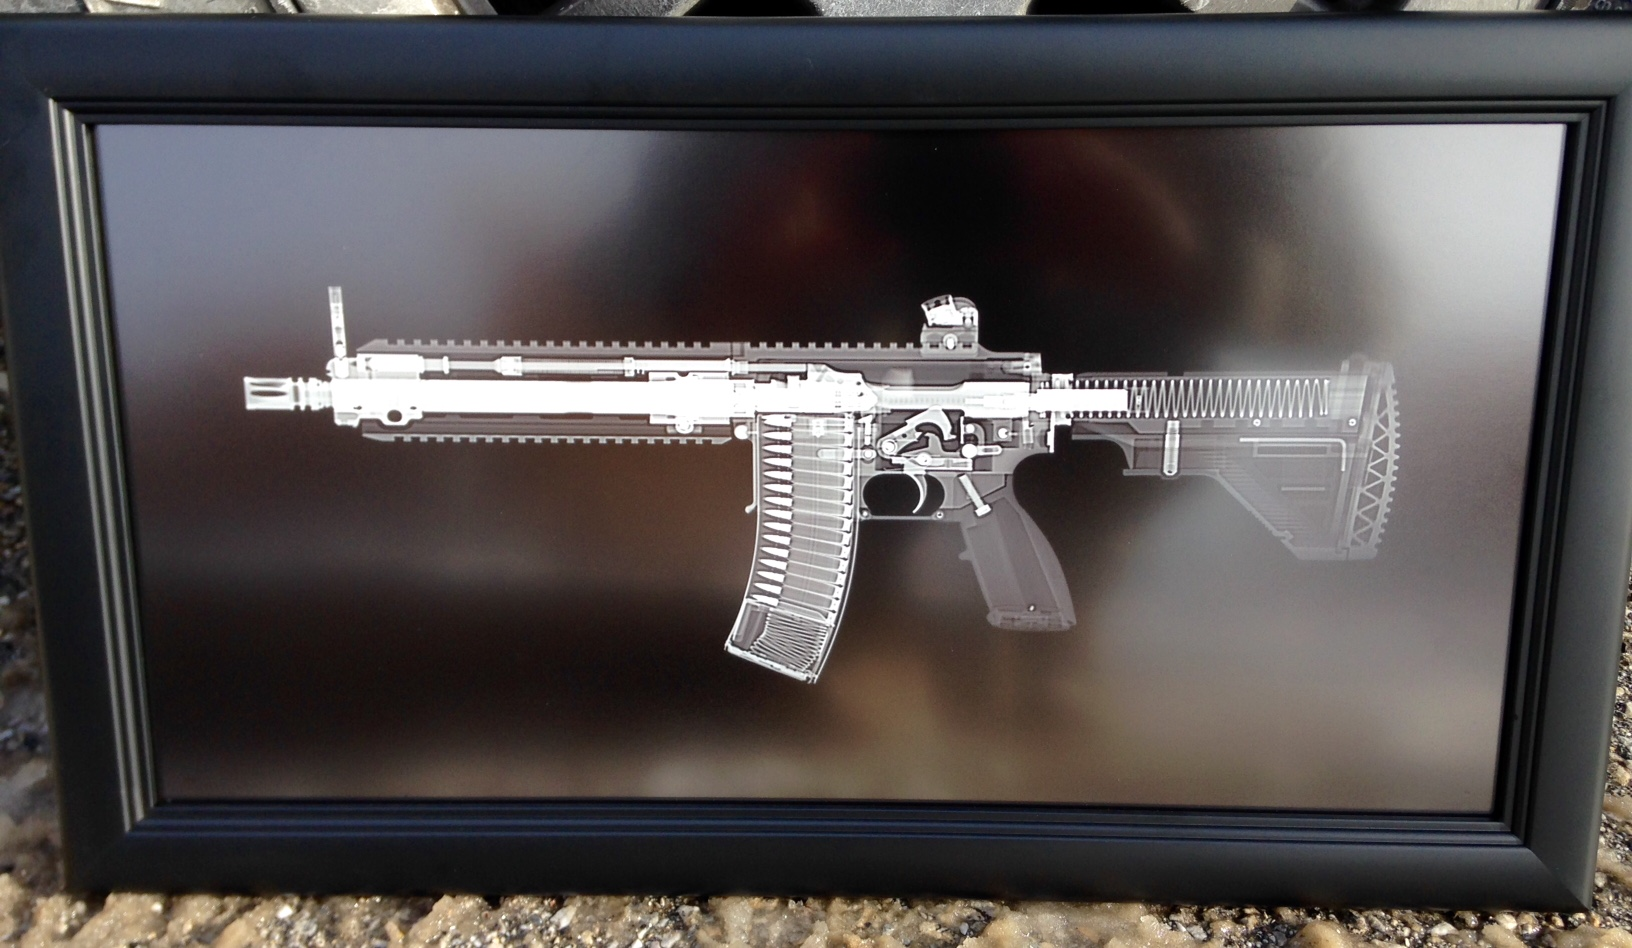 HK 416 Xray guns prints available soon. Working on a batch order now.-hk416.jpeg